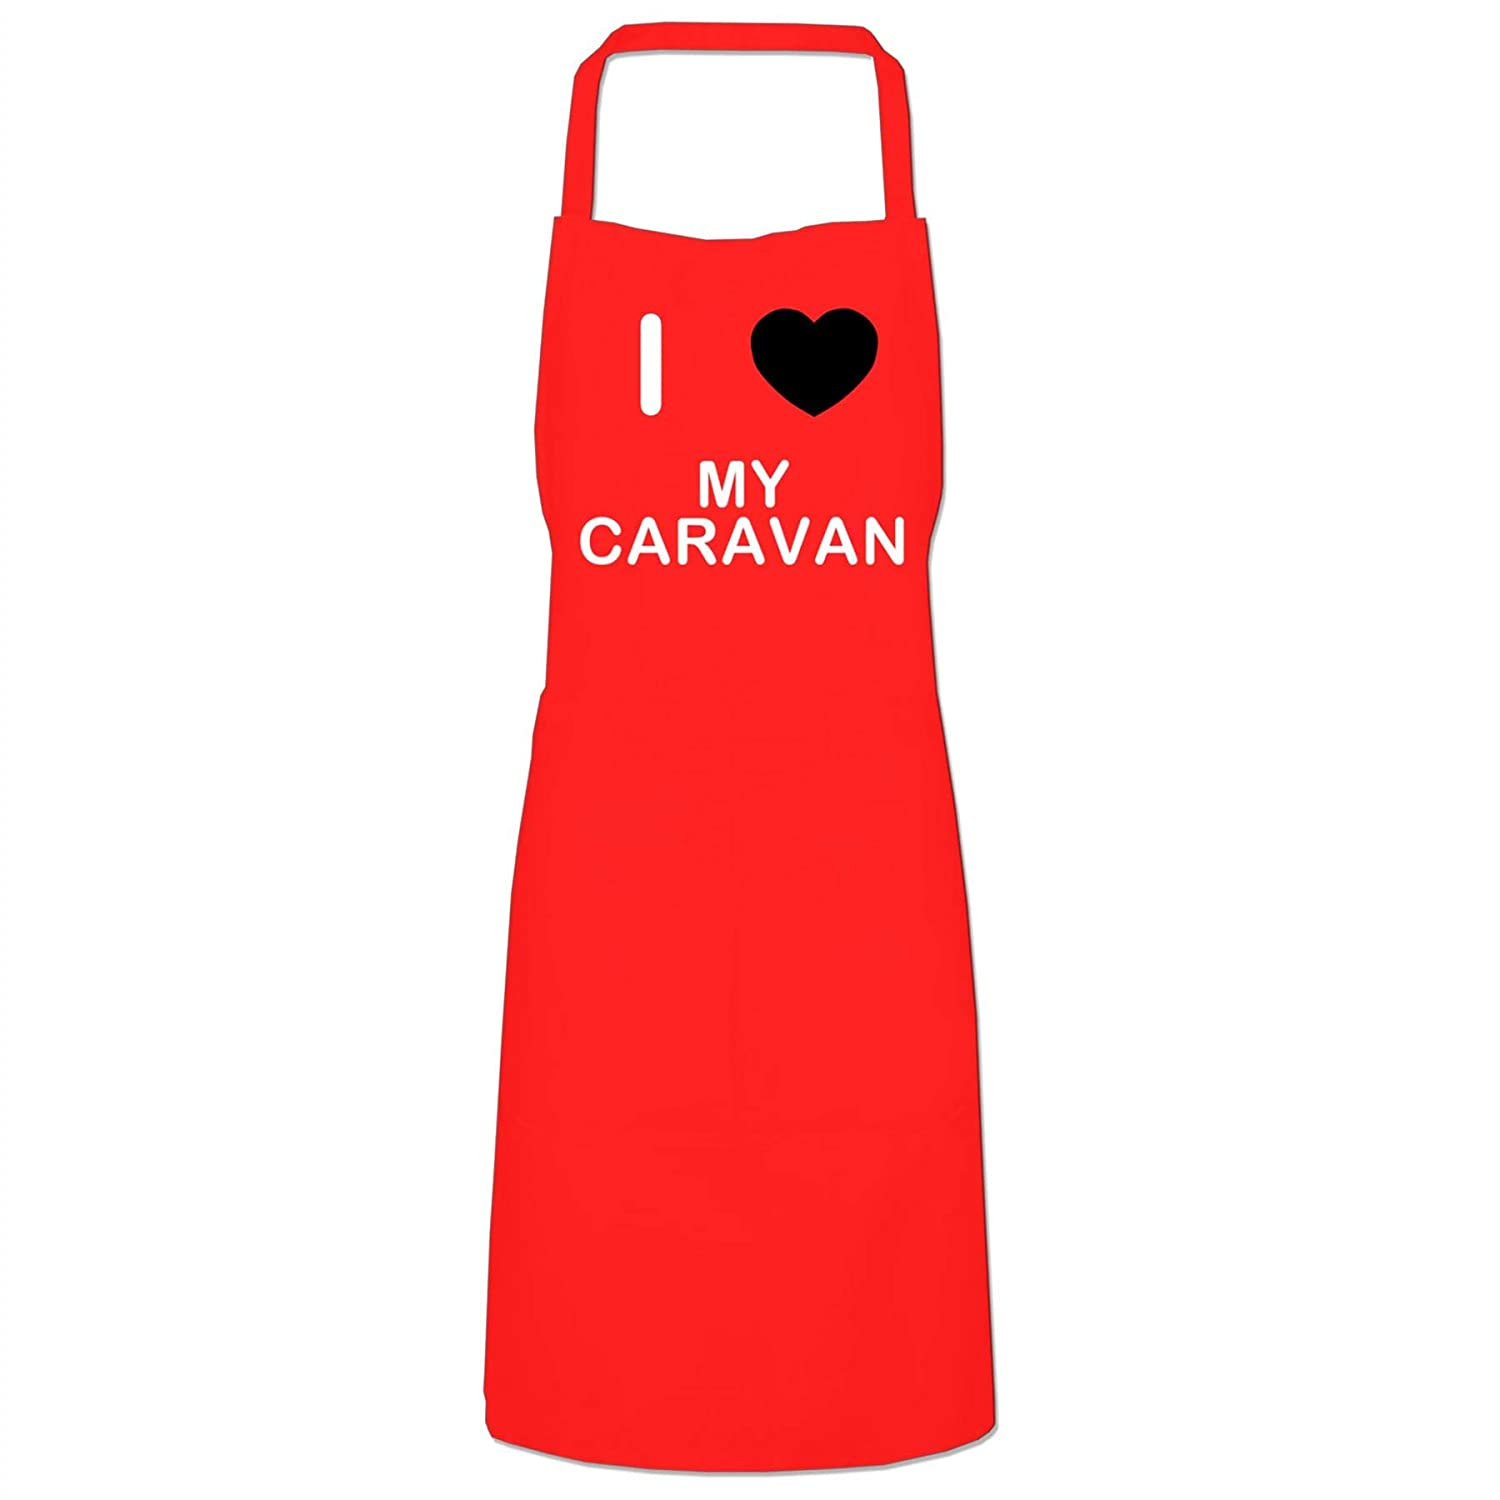 I Love My Caravan - Black Cooks Bib Apron BadgeBeast.co.uk